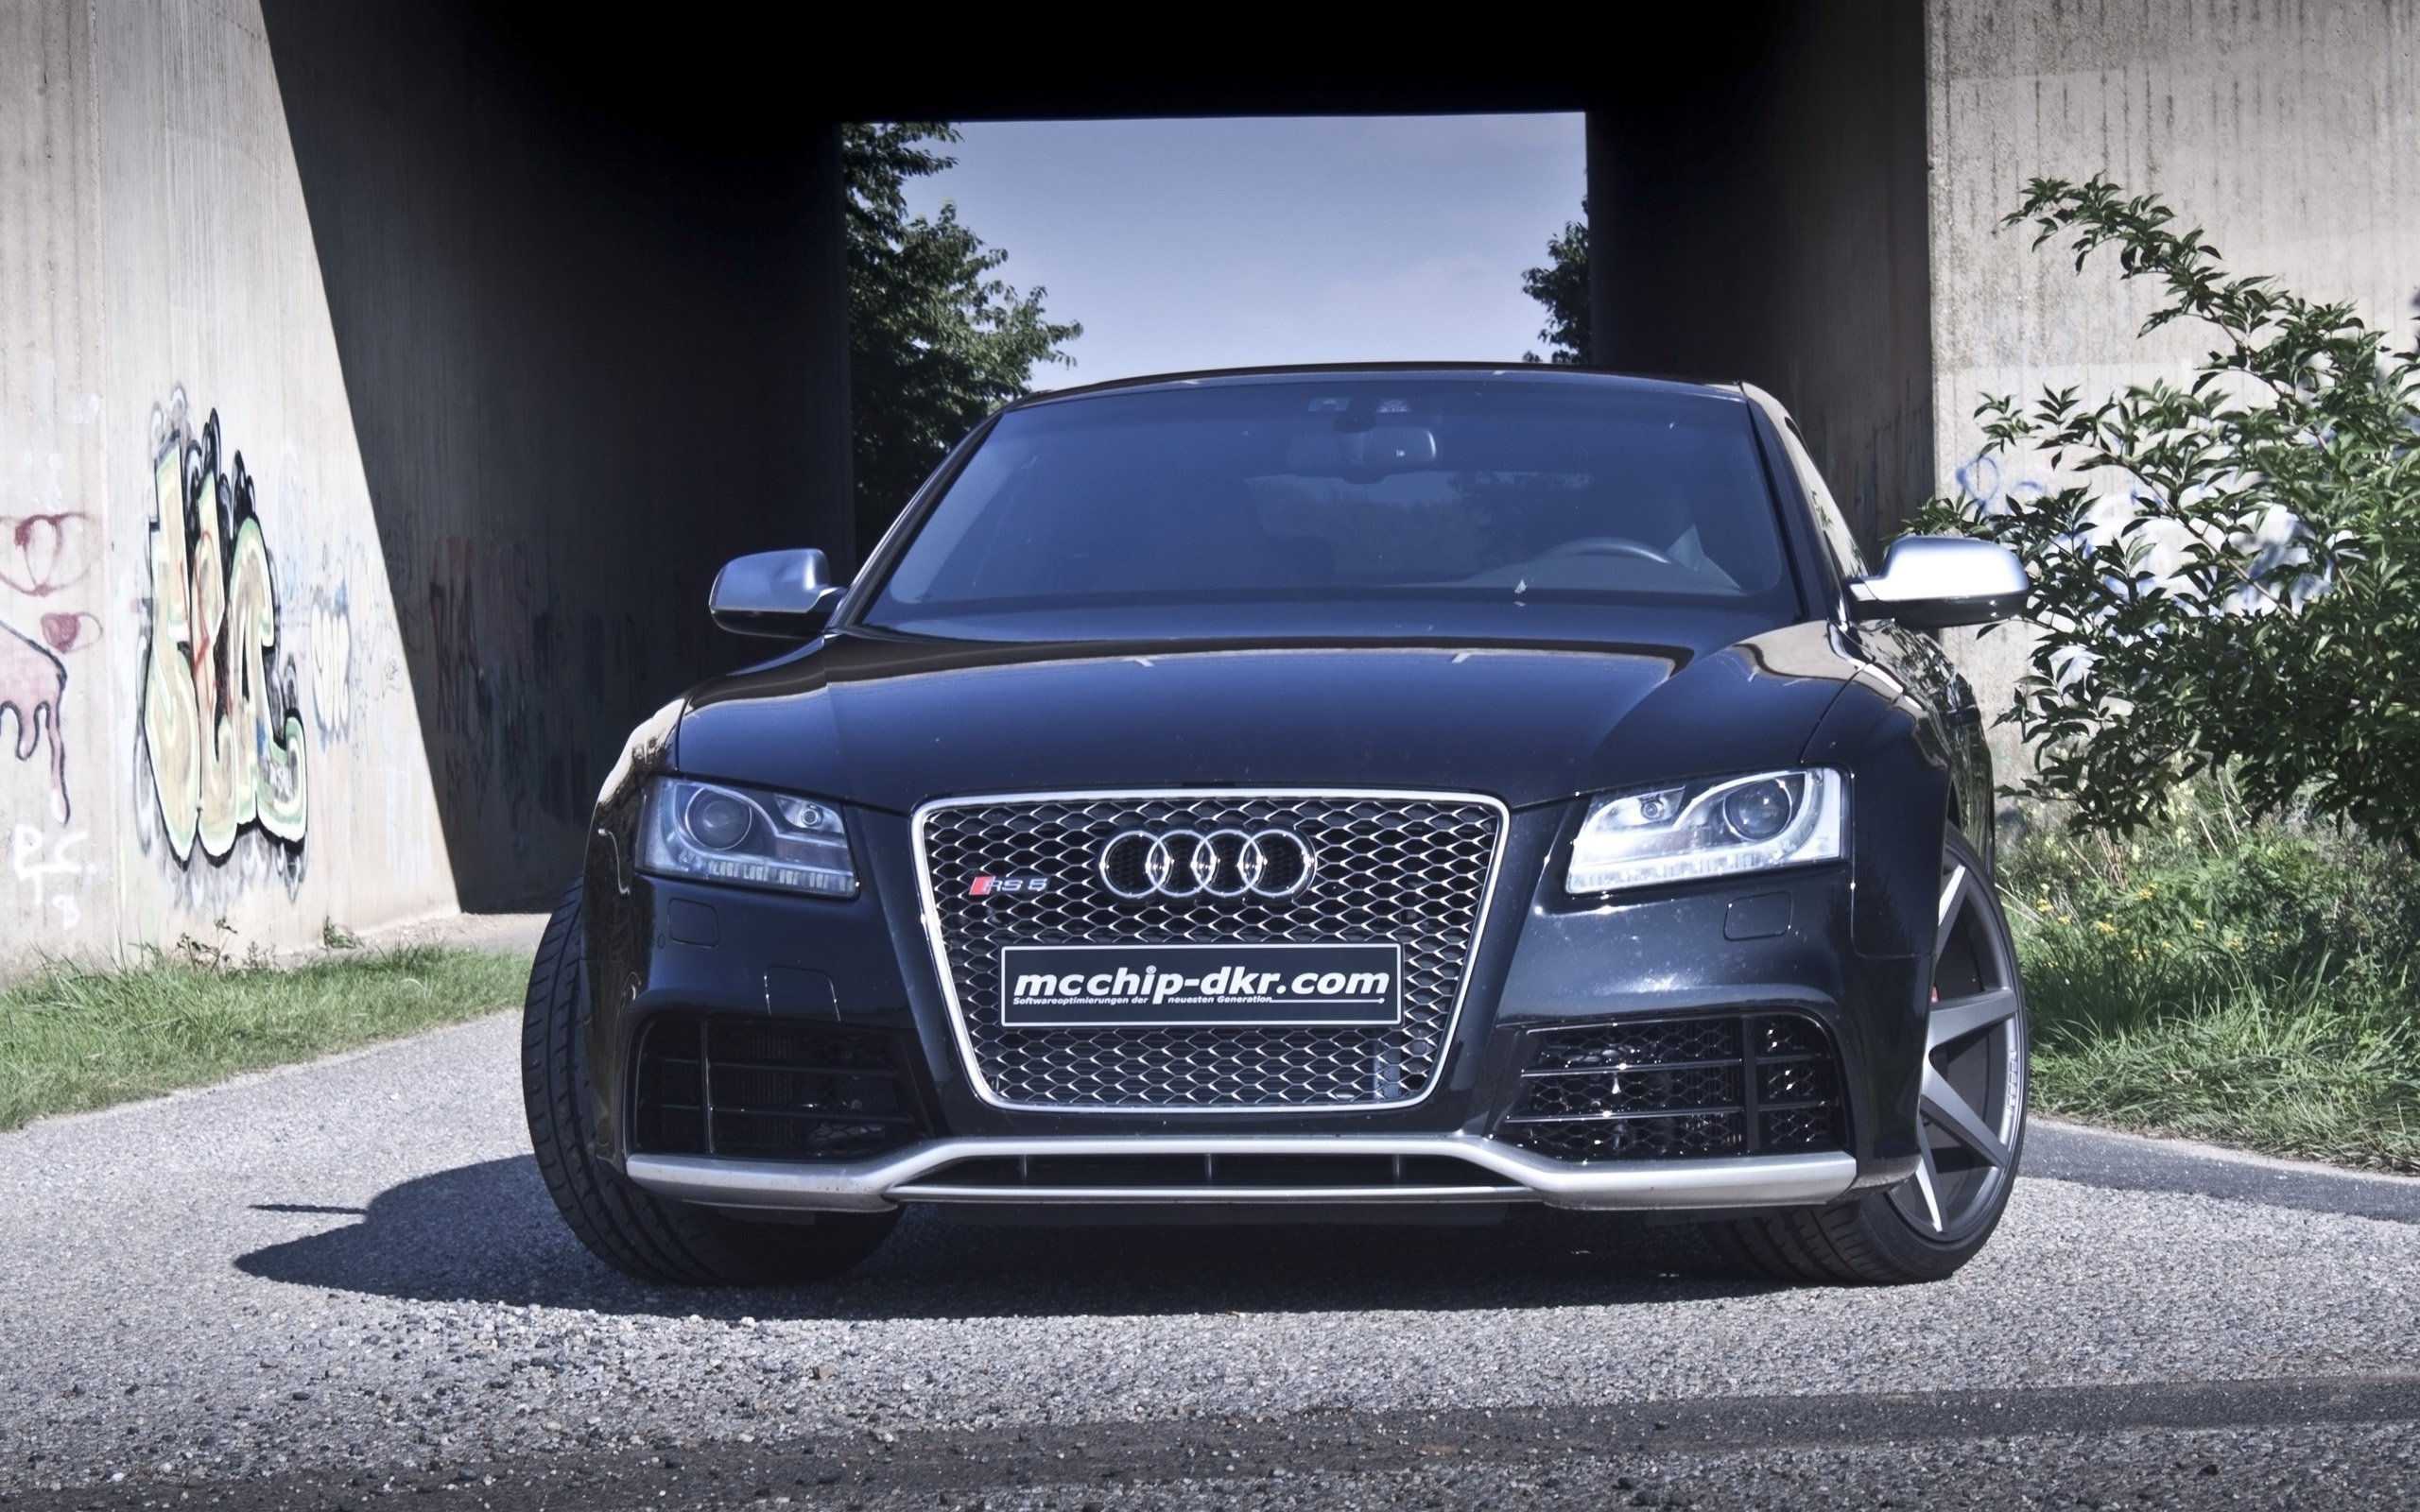 2013 mcchip dkr audi rs5 mc5xx tuning d wallpaper 2560x1600 161839 wallpaperup. Black Bedroom Furniture Sets. Home Design Ideas